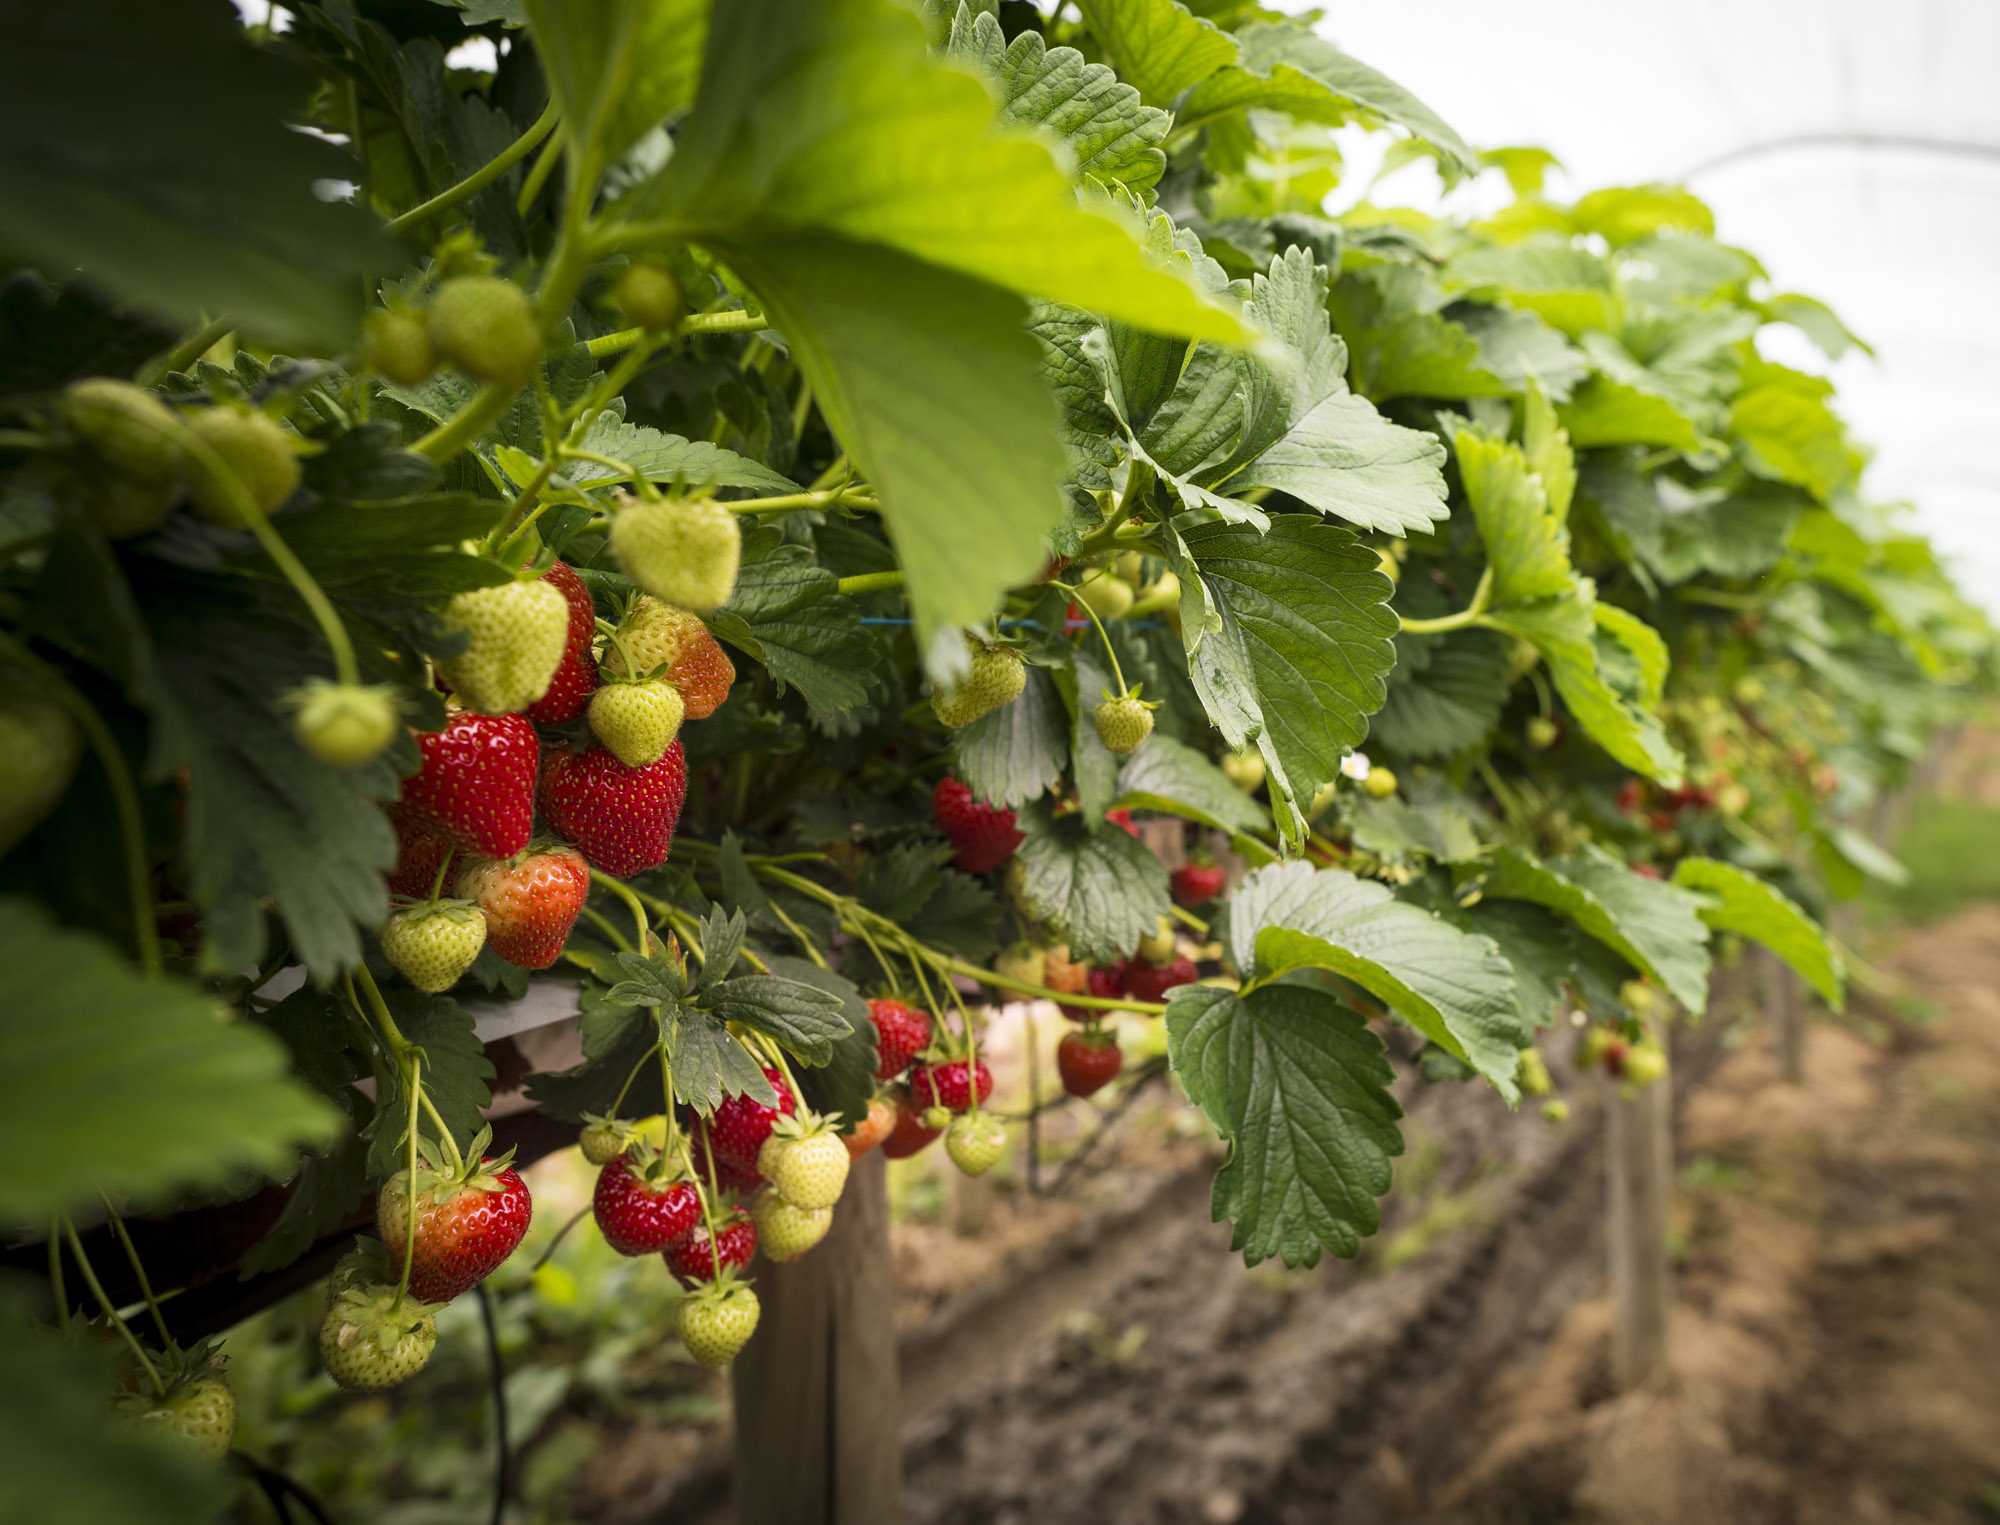 Strawberry Planting has begun at the farm �